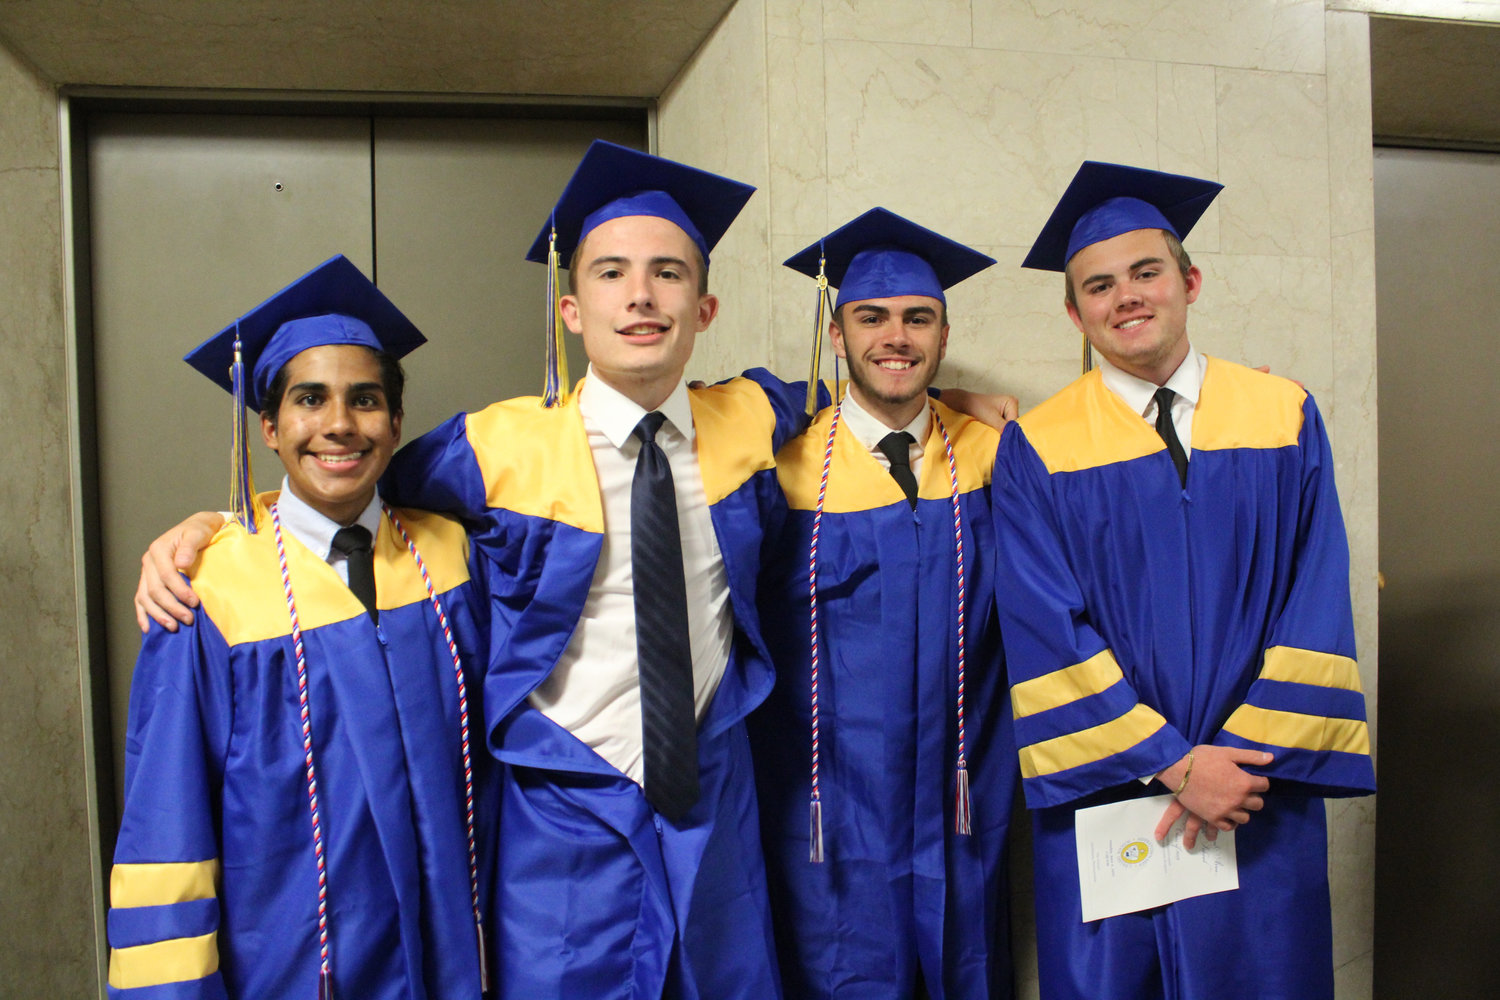 Edgar Lopez, Kenny Britcher, Tanner Albright and Ivan Henderson pose for photos before MAHS graduation June 4.